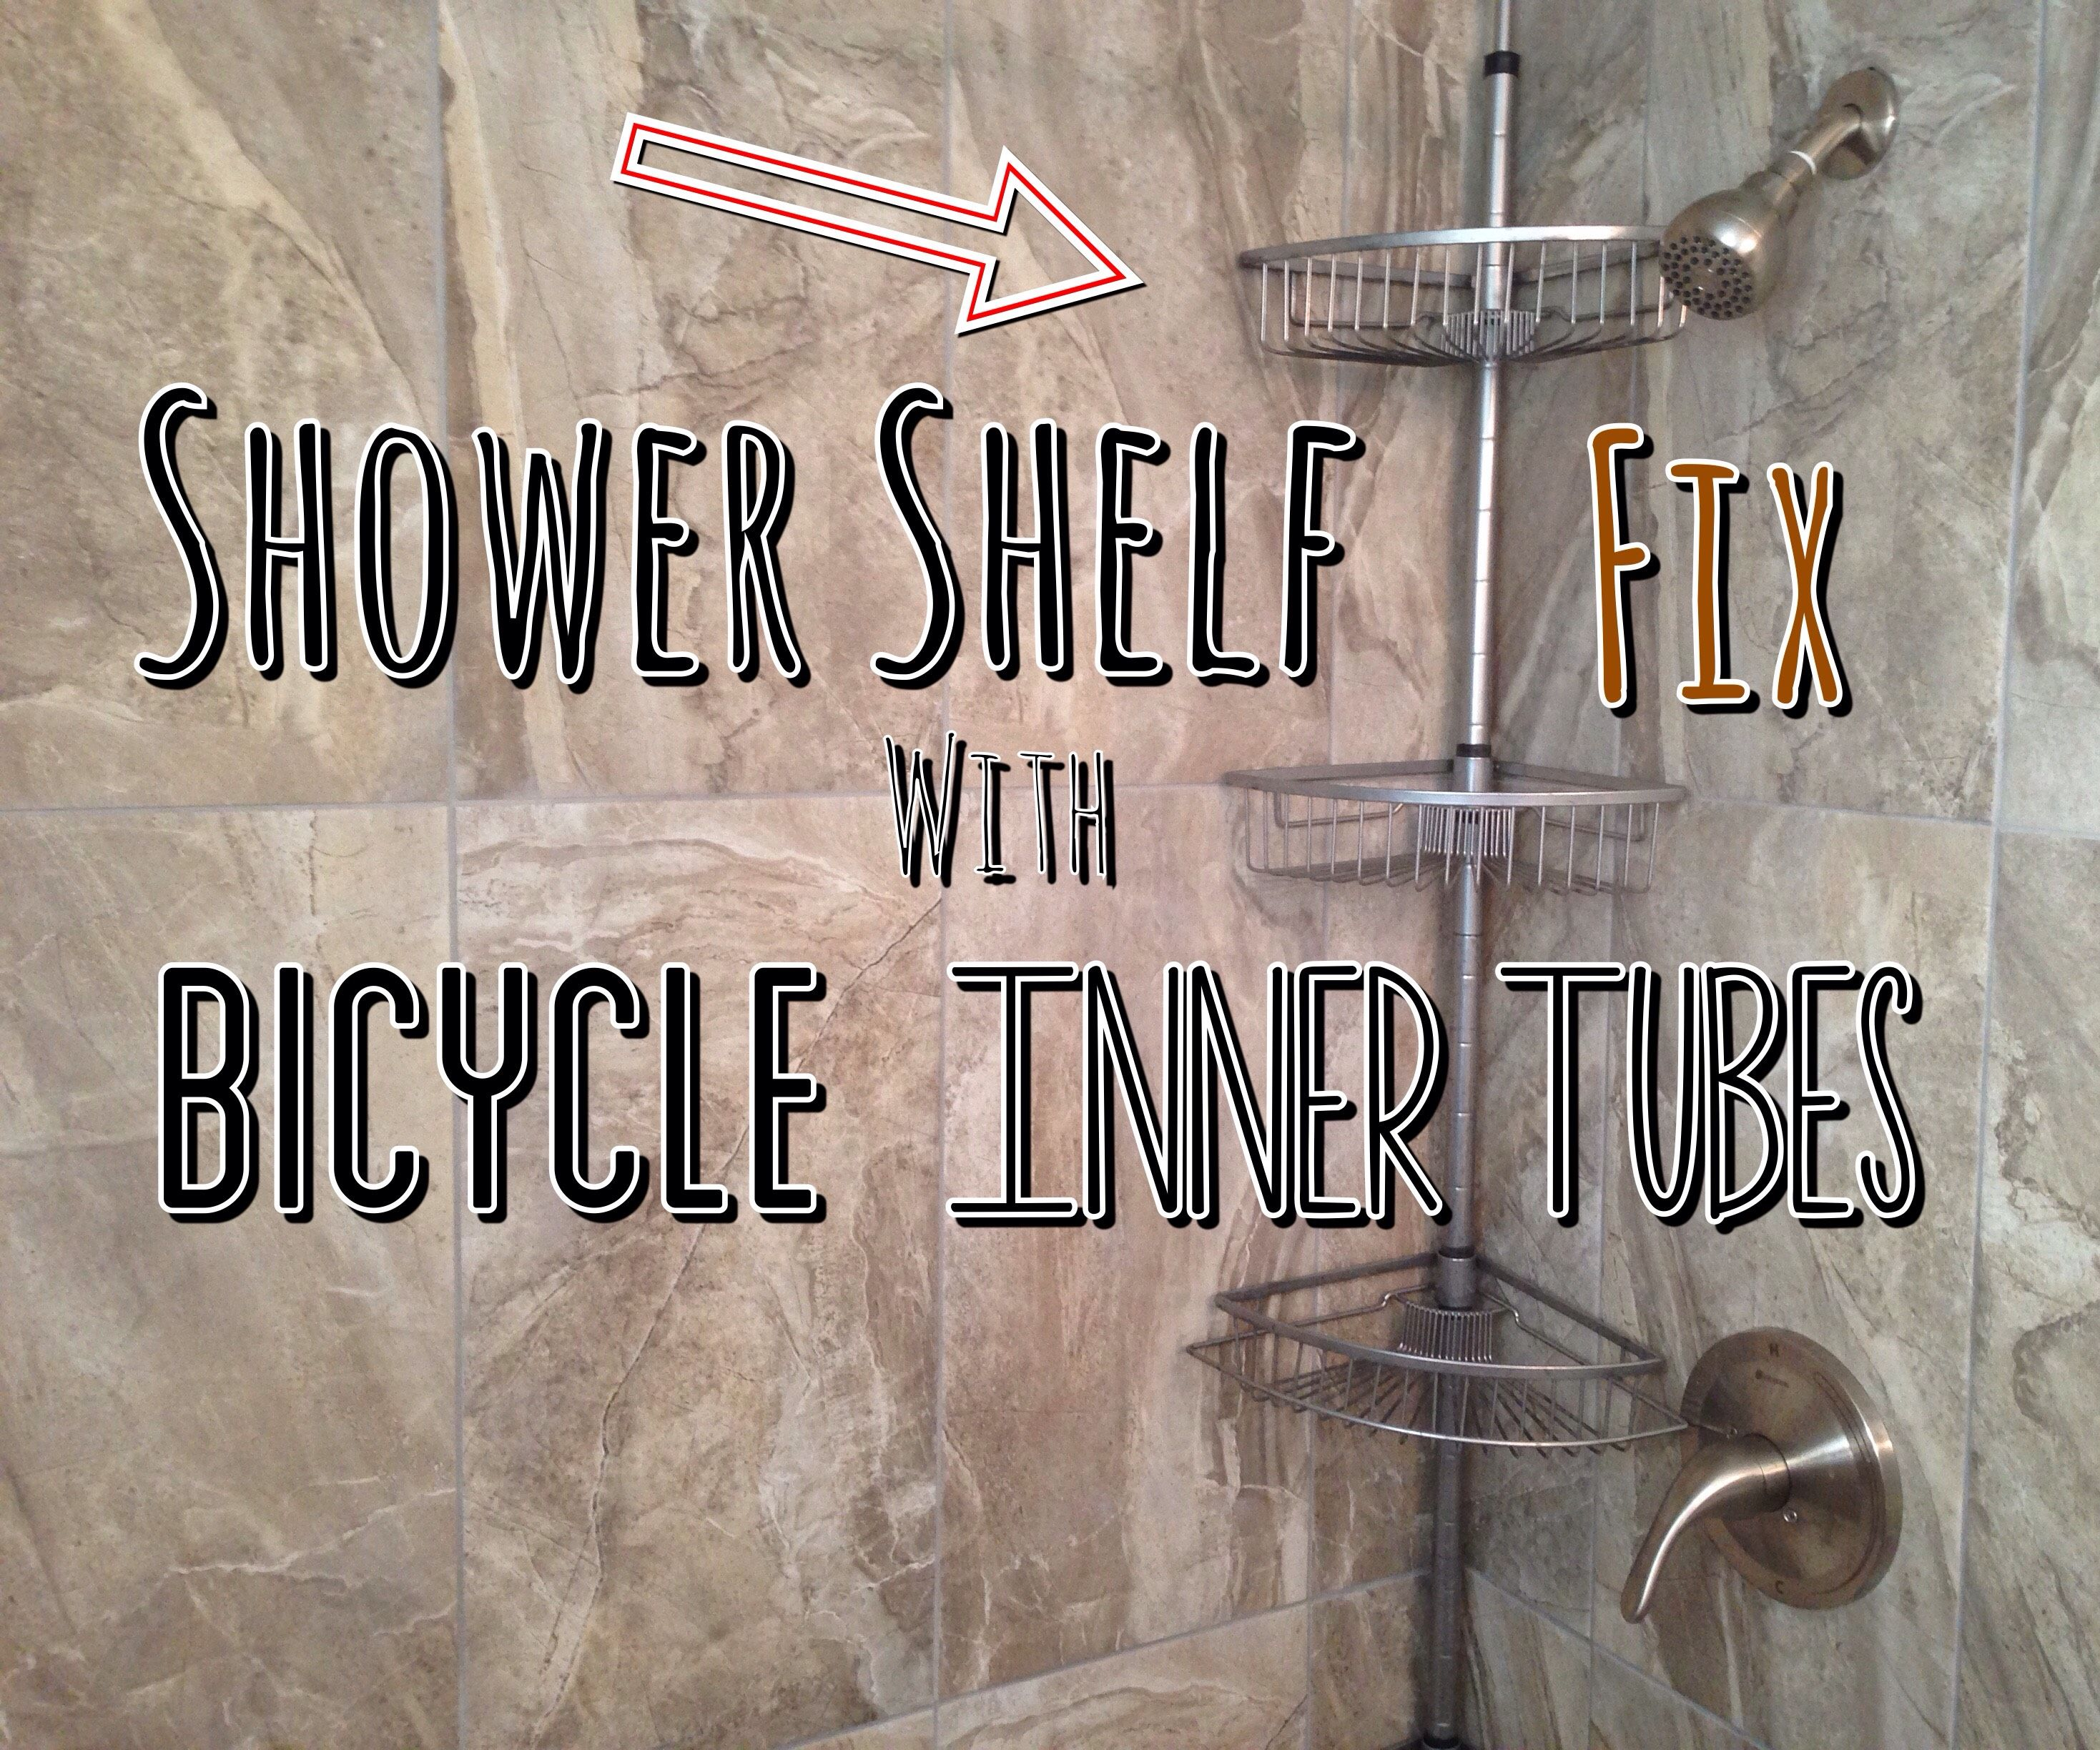 Shower Shelf Fix With Bicycle Inner Tubes